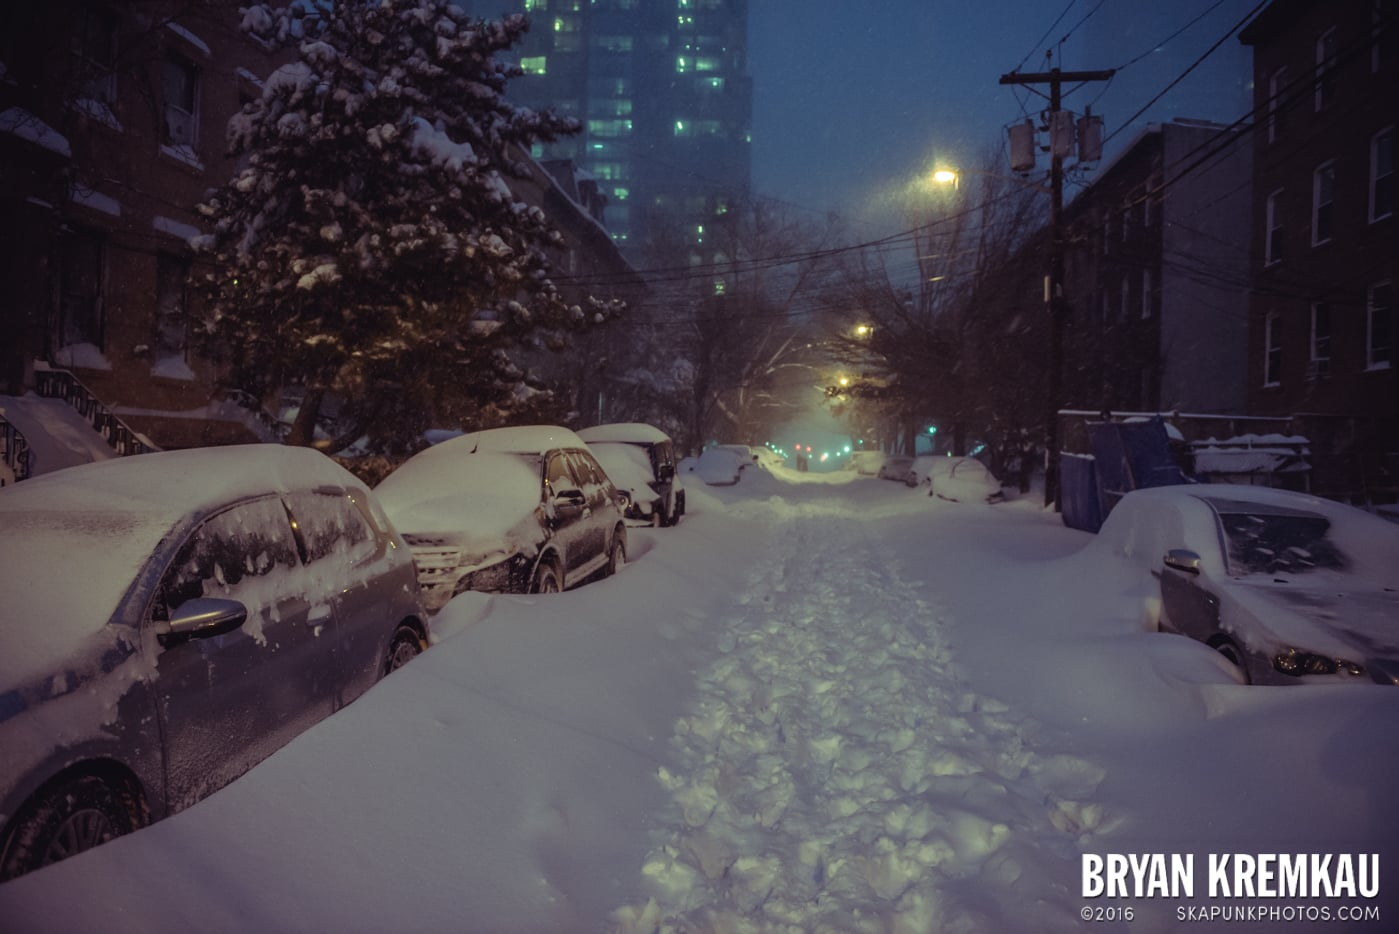 Blizzard 2016 in Jersey City, NJ - 1.23.16 (15)